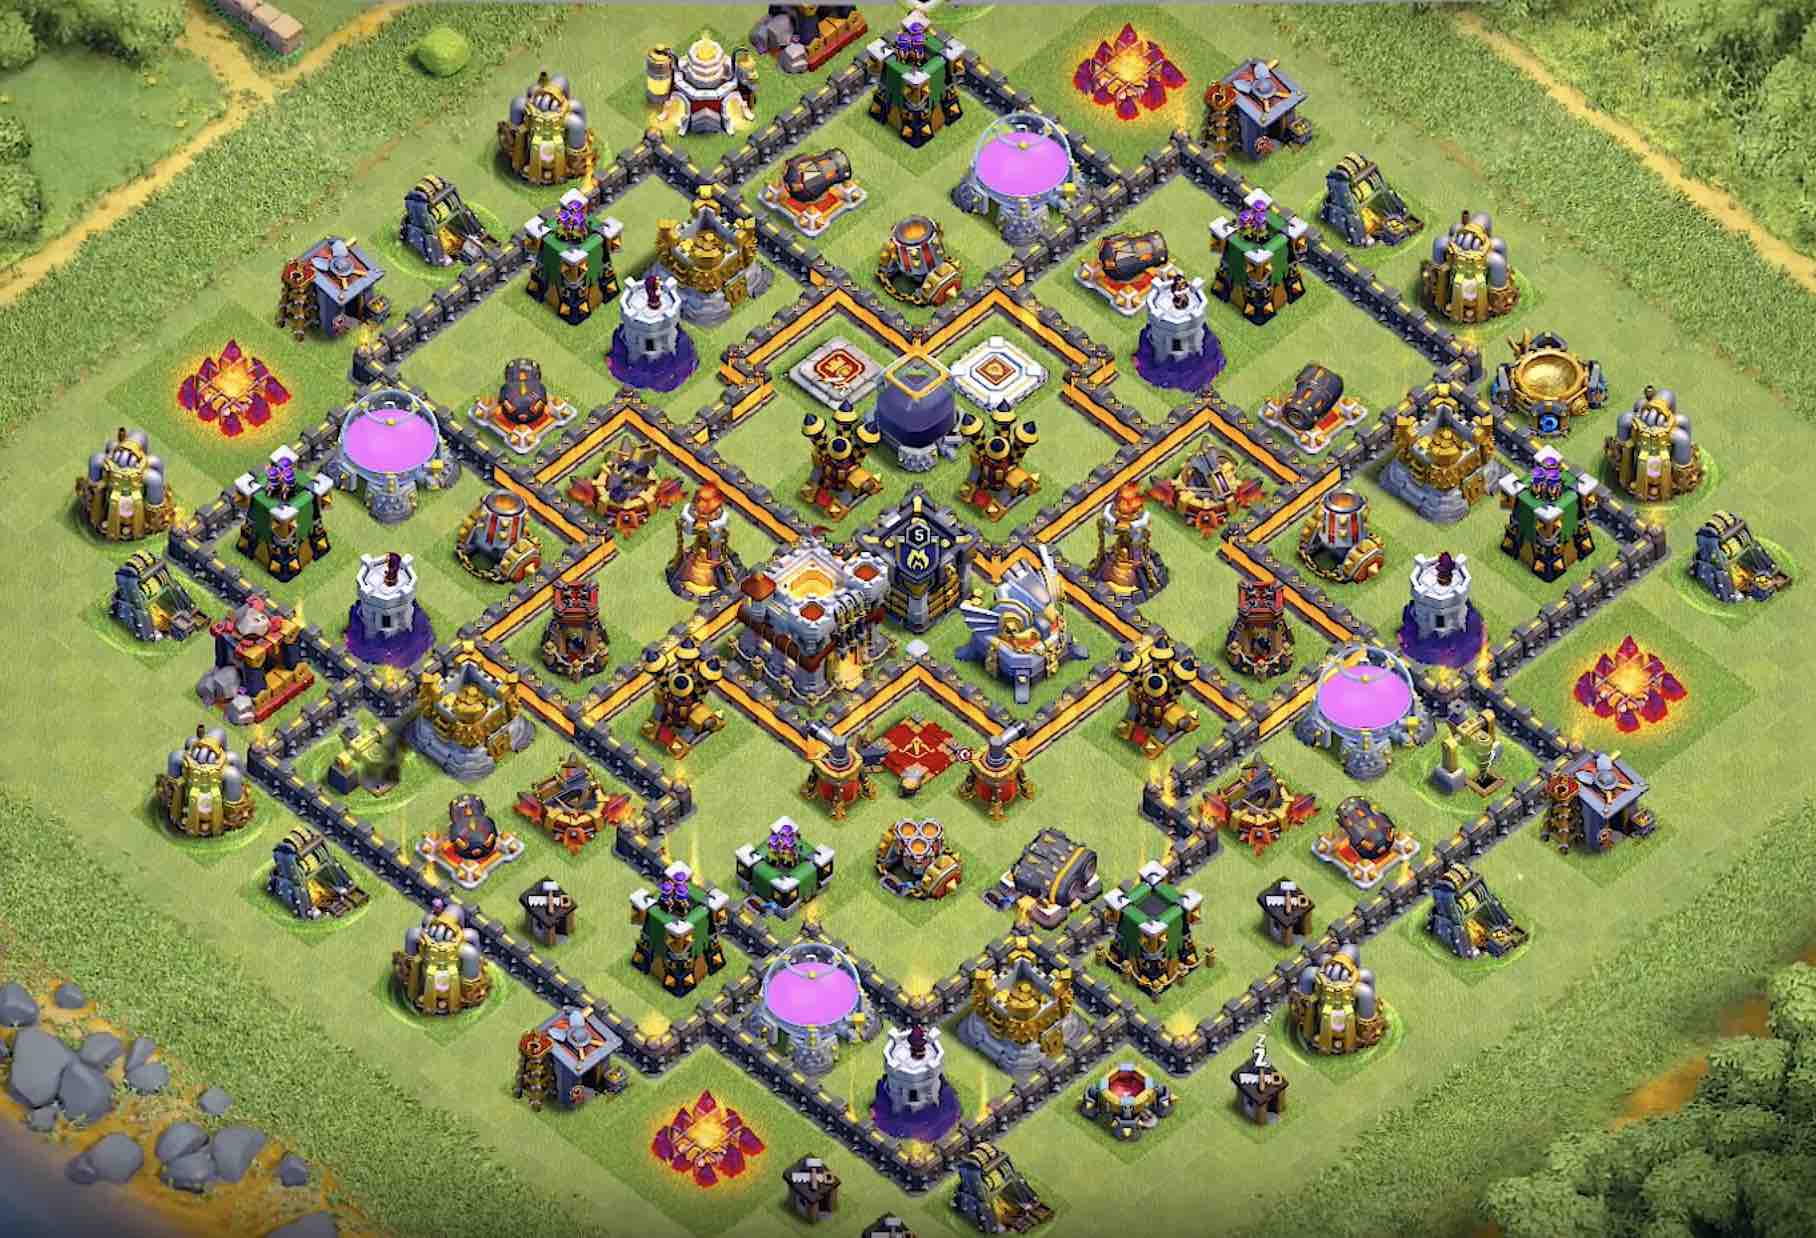 Base Coc Th 11 Terkuat Di Dunia 11